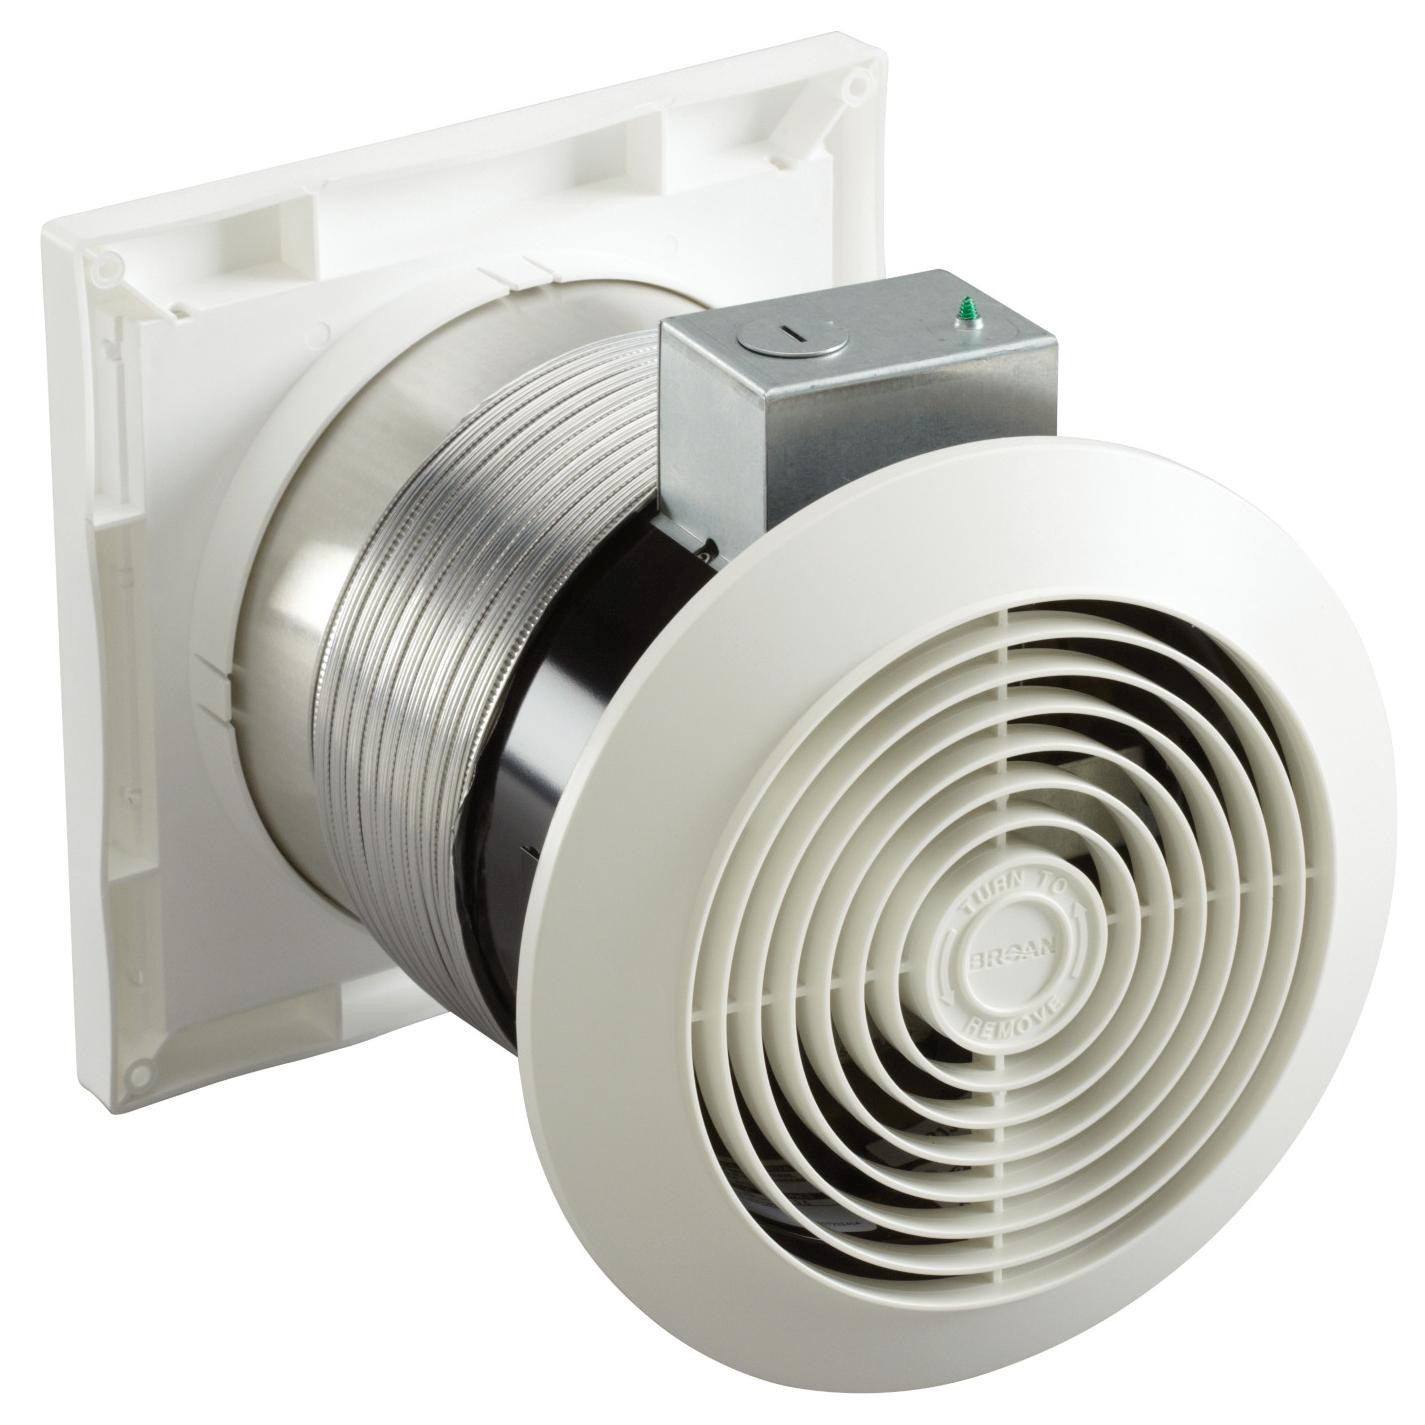 Through Wall Bathroom Exhaust Fan Excellent Broan M Through Wall Fan 6 Inch Cfm 35 sones Bathroom Inspiration